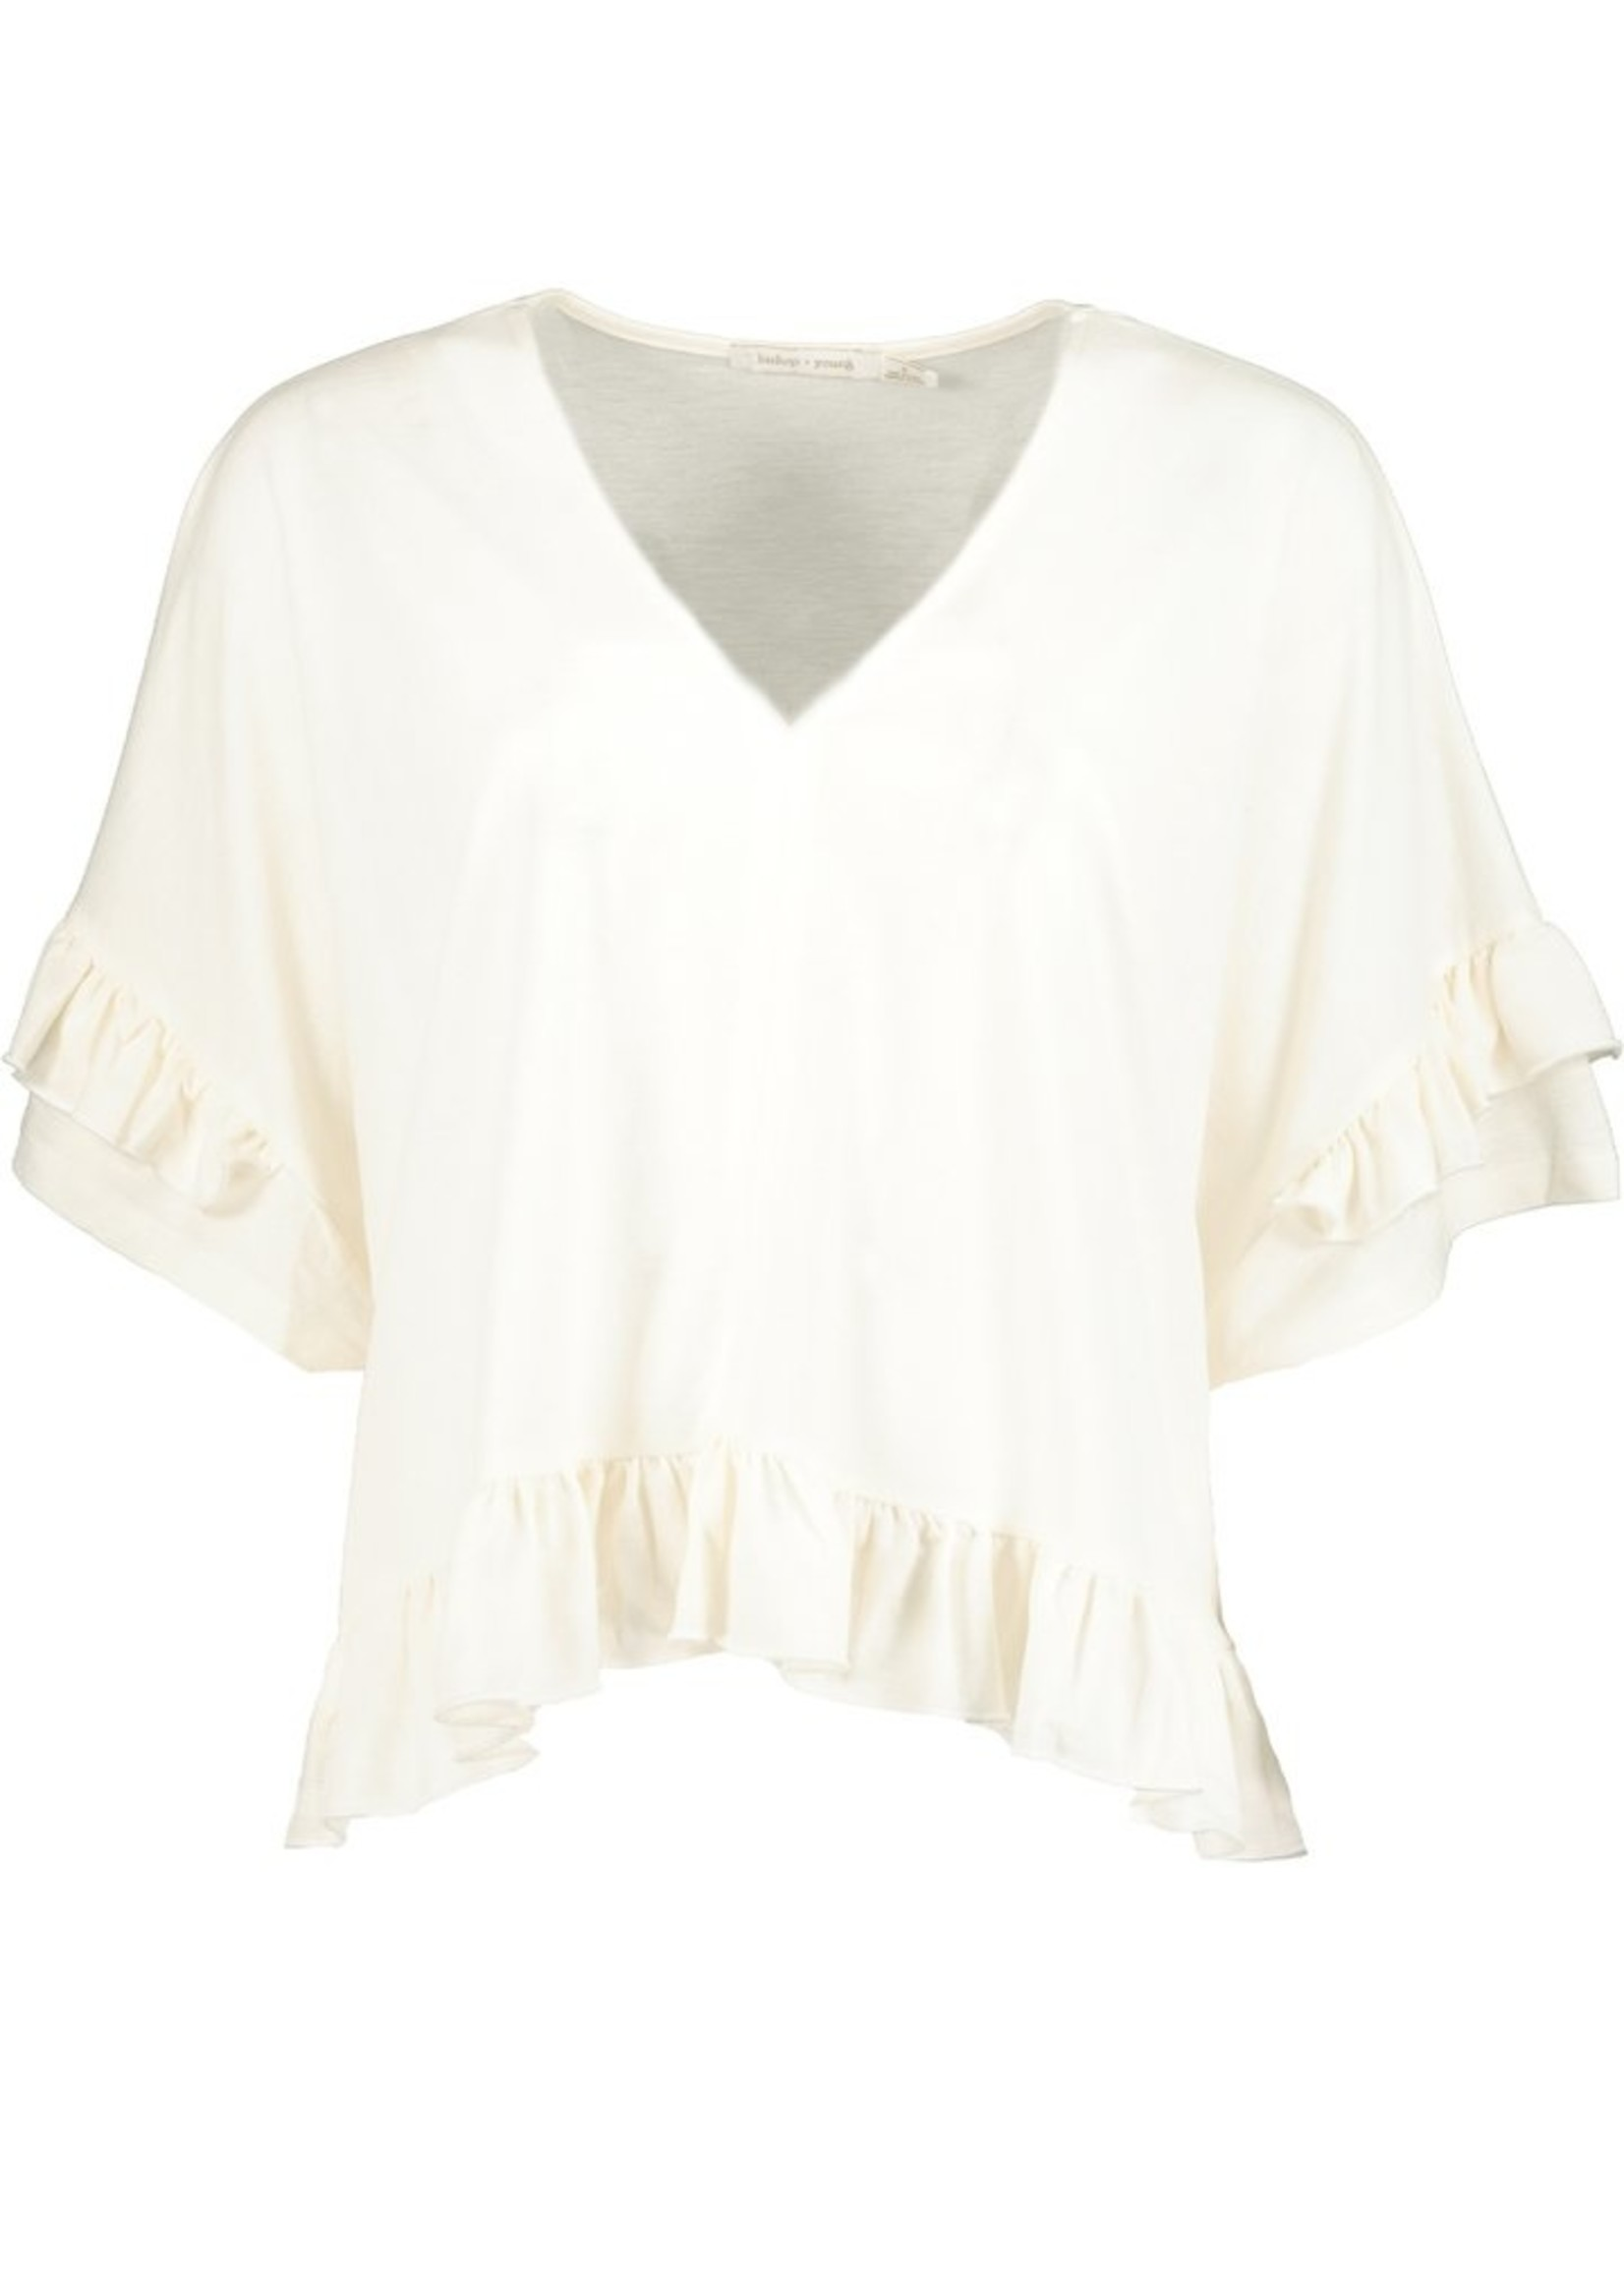 Elitaire Boutique Ruffle Tee